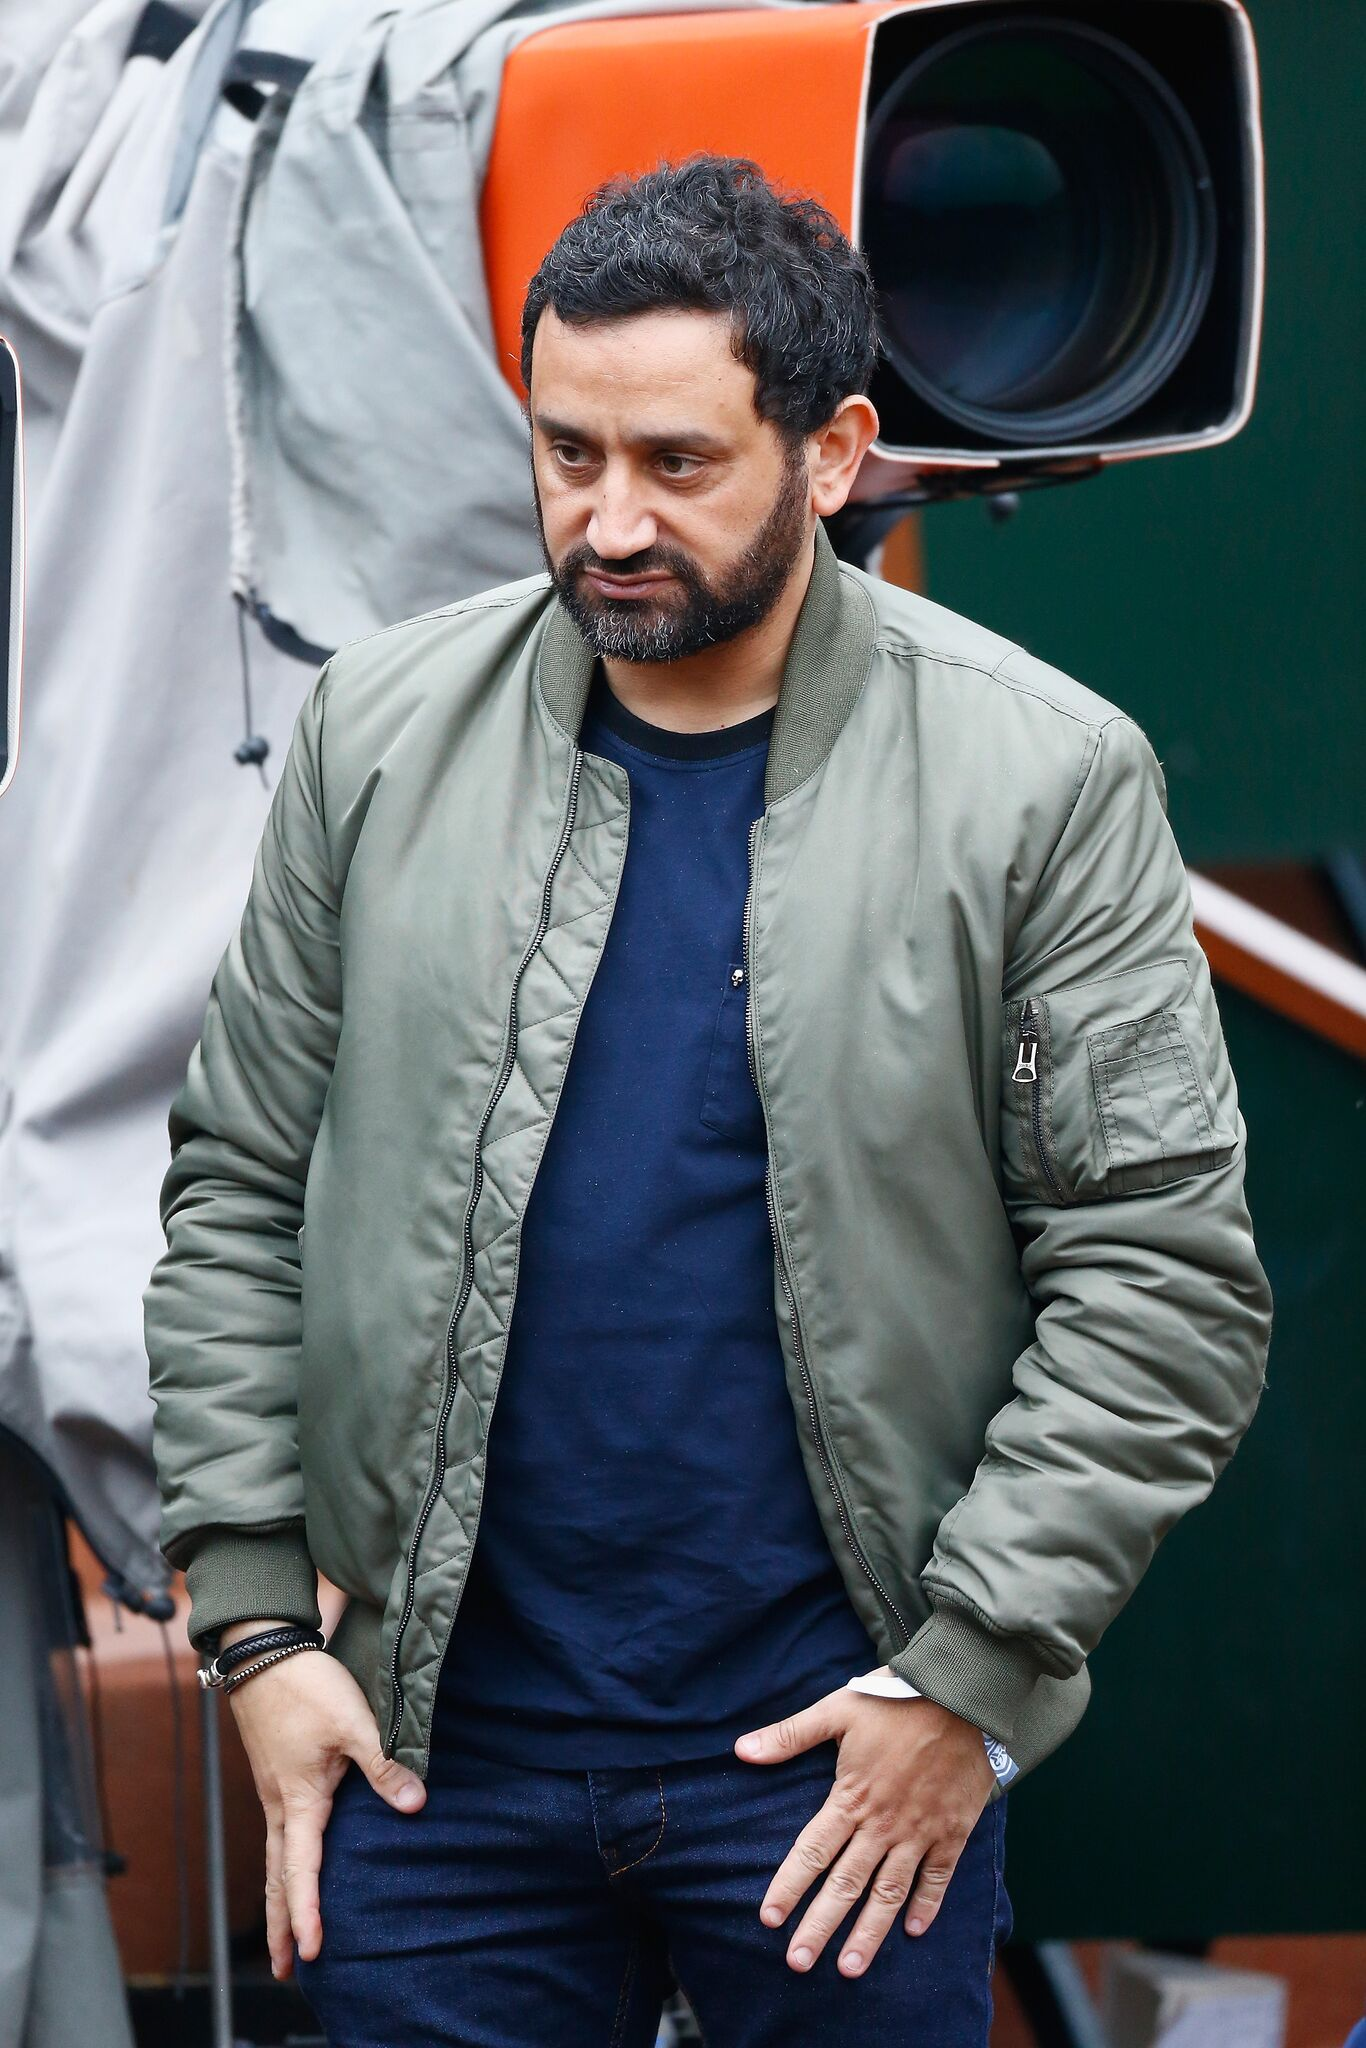 L'animateur Cyril Hanouna. l Photo : Getty Images